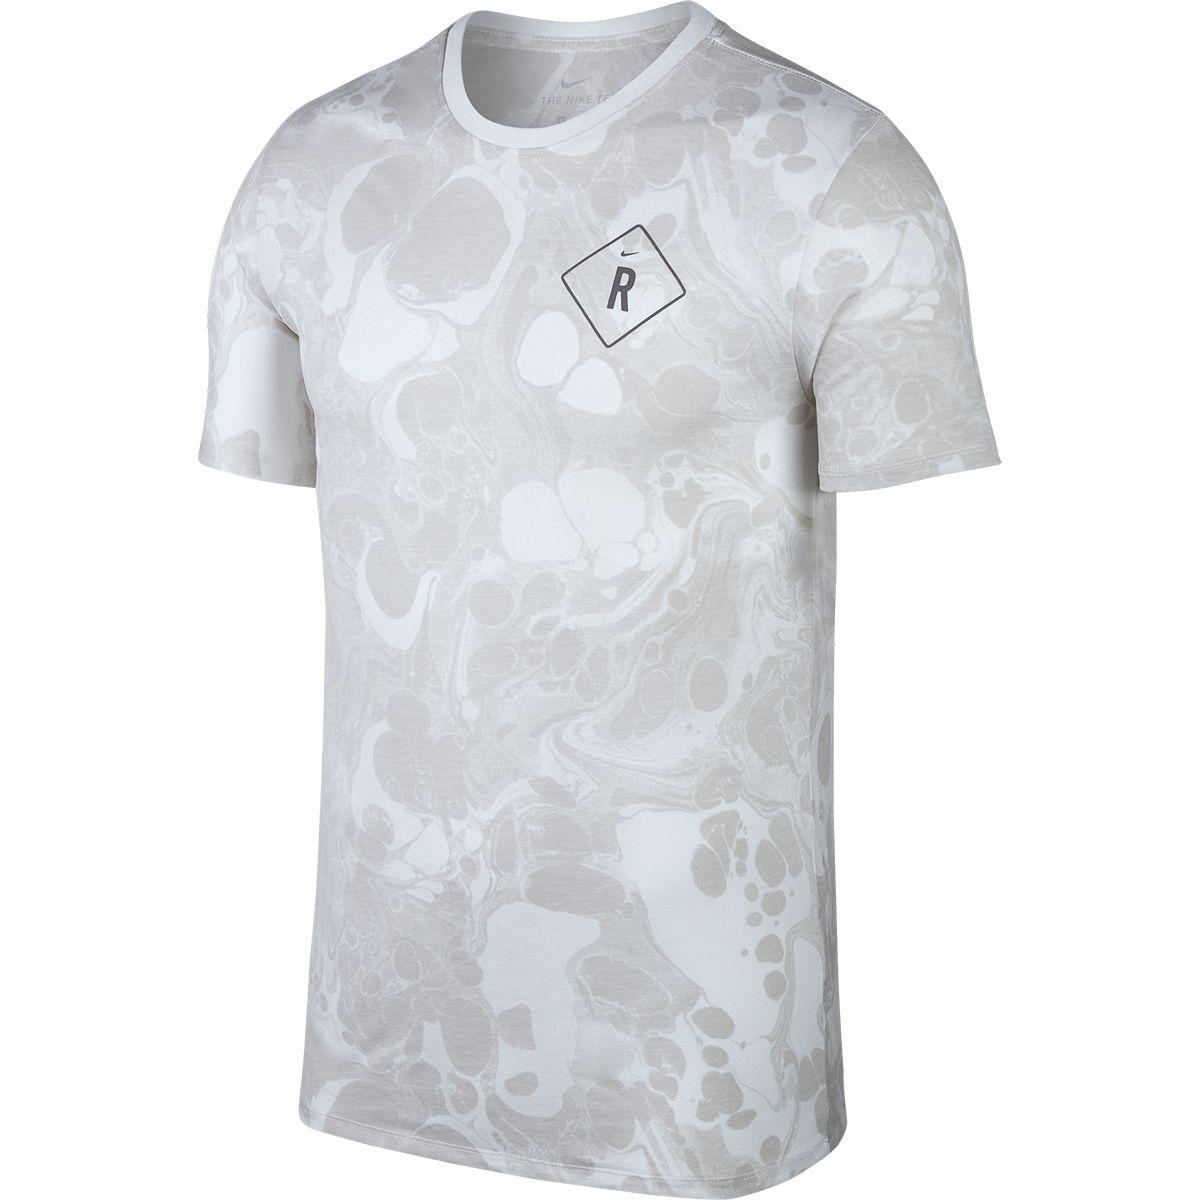 4131f7ad Nike Dry Division Shirt for Men - Lyst